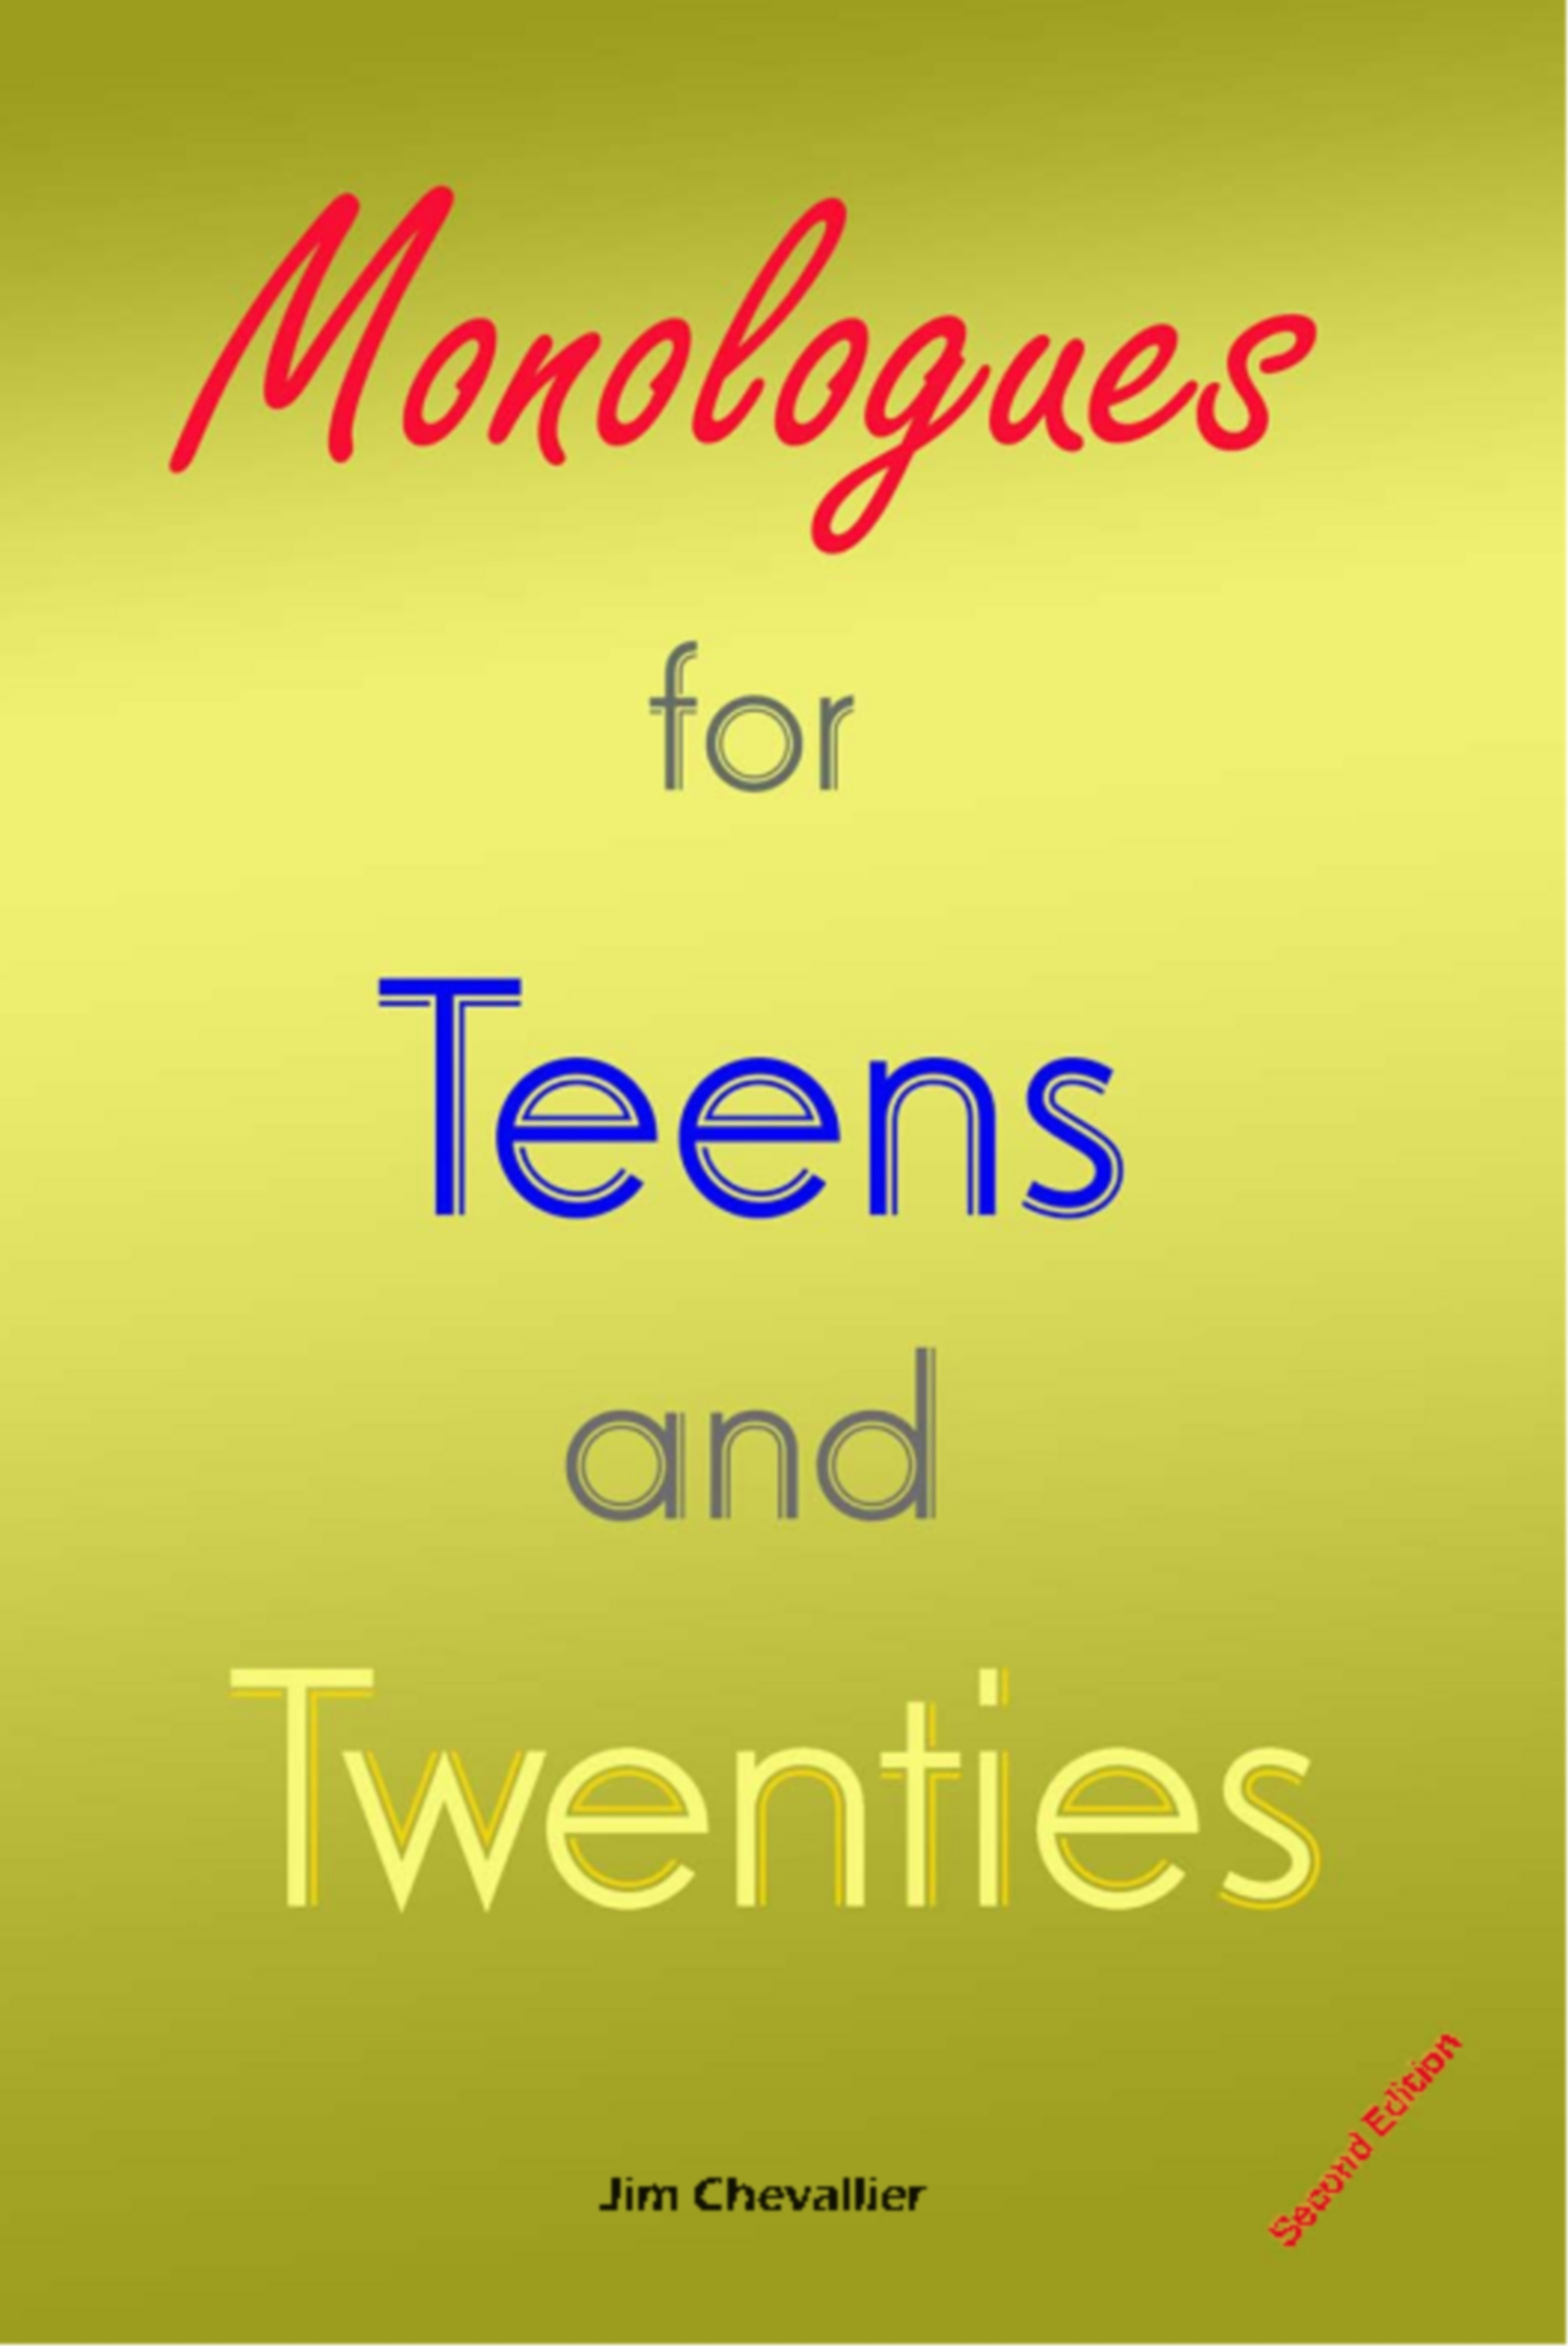 Monologues for Teens and Twenties